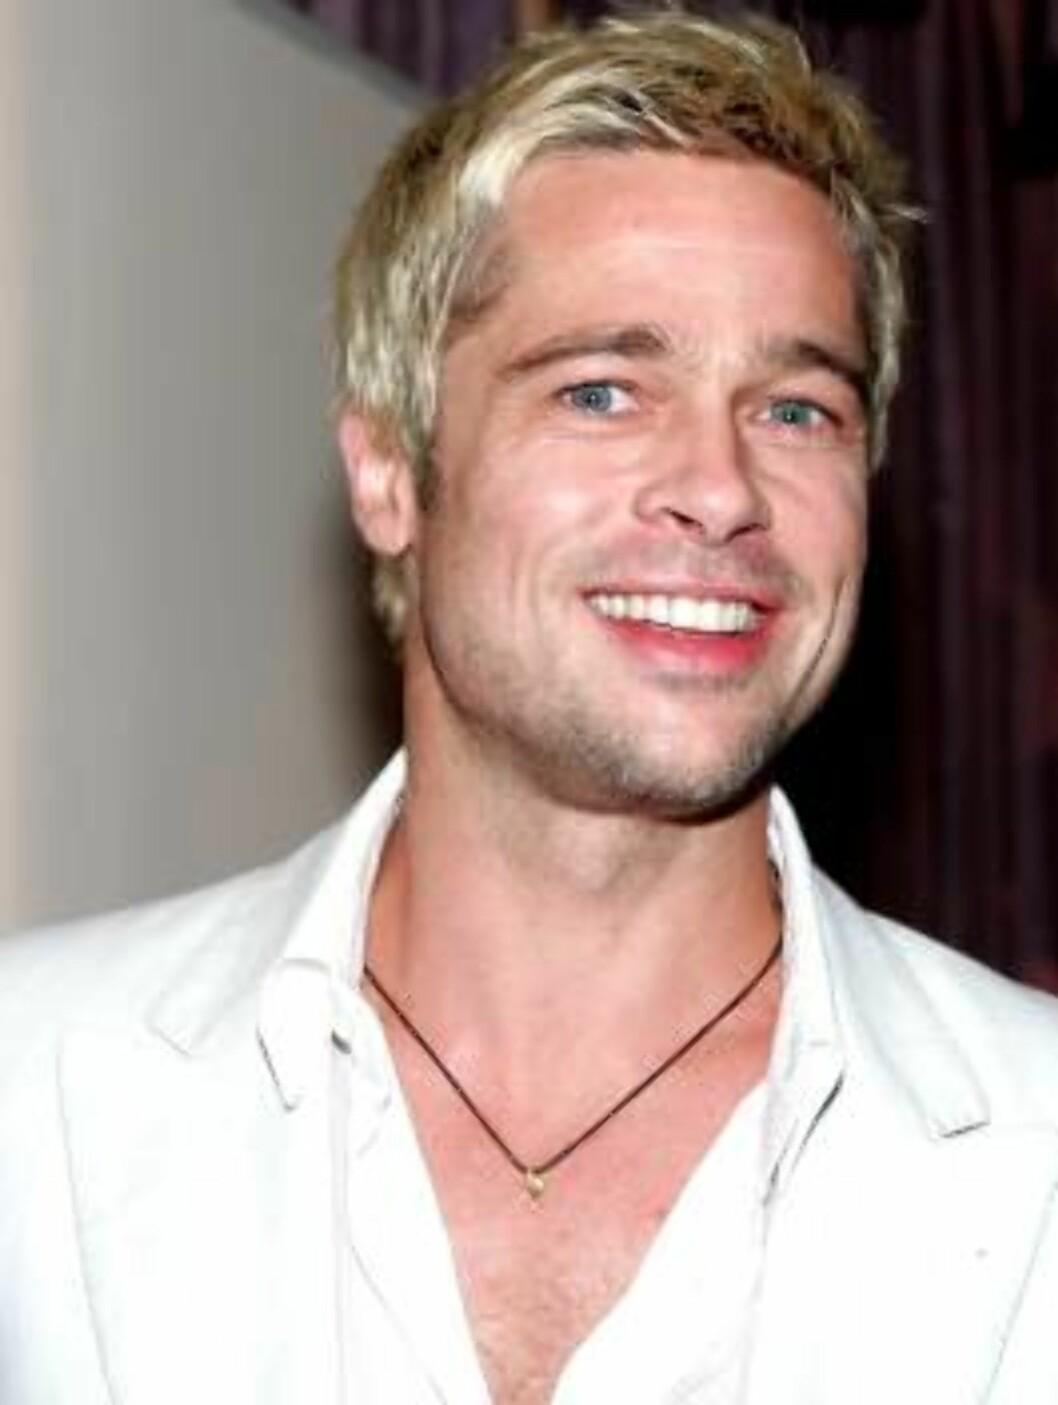 BEVERLY HILLS, CA - JULY 20:  Actor Brad Pitt poses at the Hollywood Foreign Press Association annual installation luncheon at the Beverly Hills Hotel on July 20, 2005 in Beverly Hills, California.  (Photo by Kevin Winter/Getty Images) *** Local Caption * Foto: All Over Press